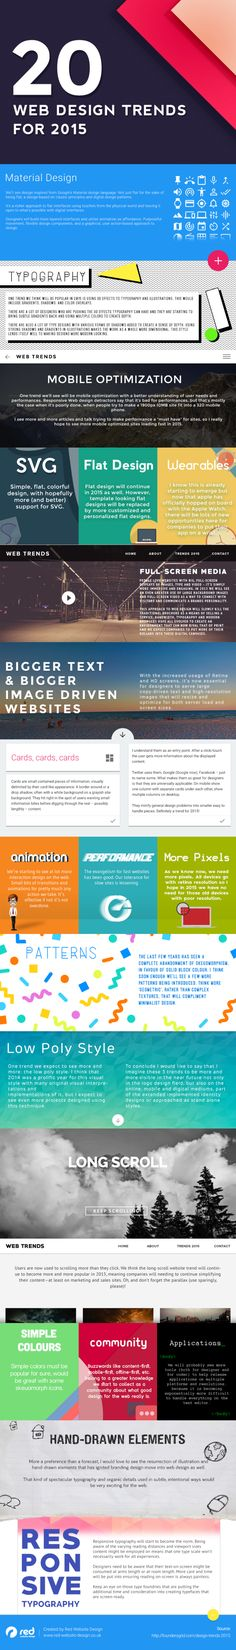 20 Web Design Trends You Can Expect to See in 2015